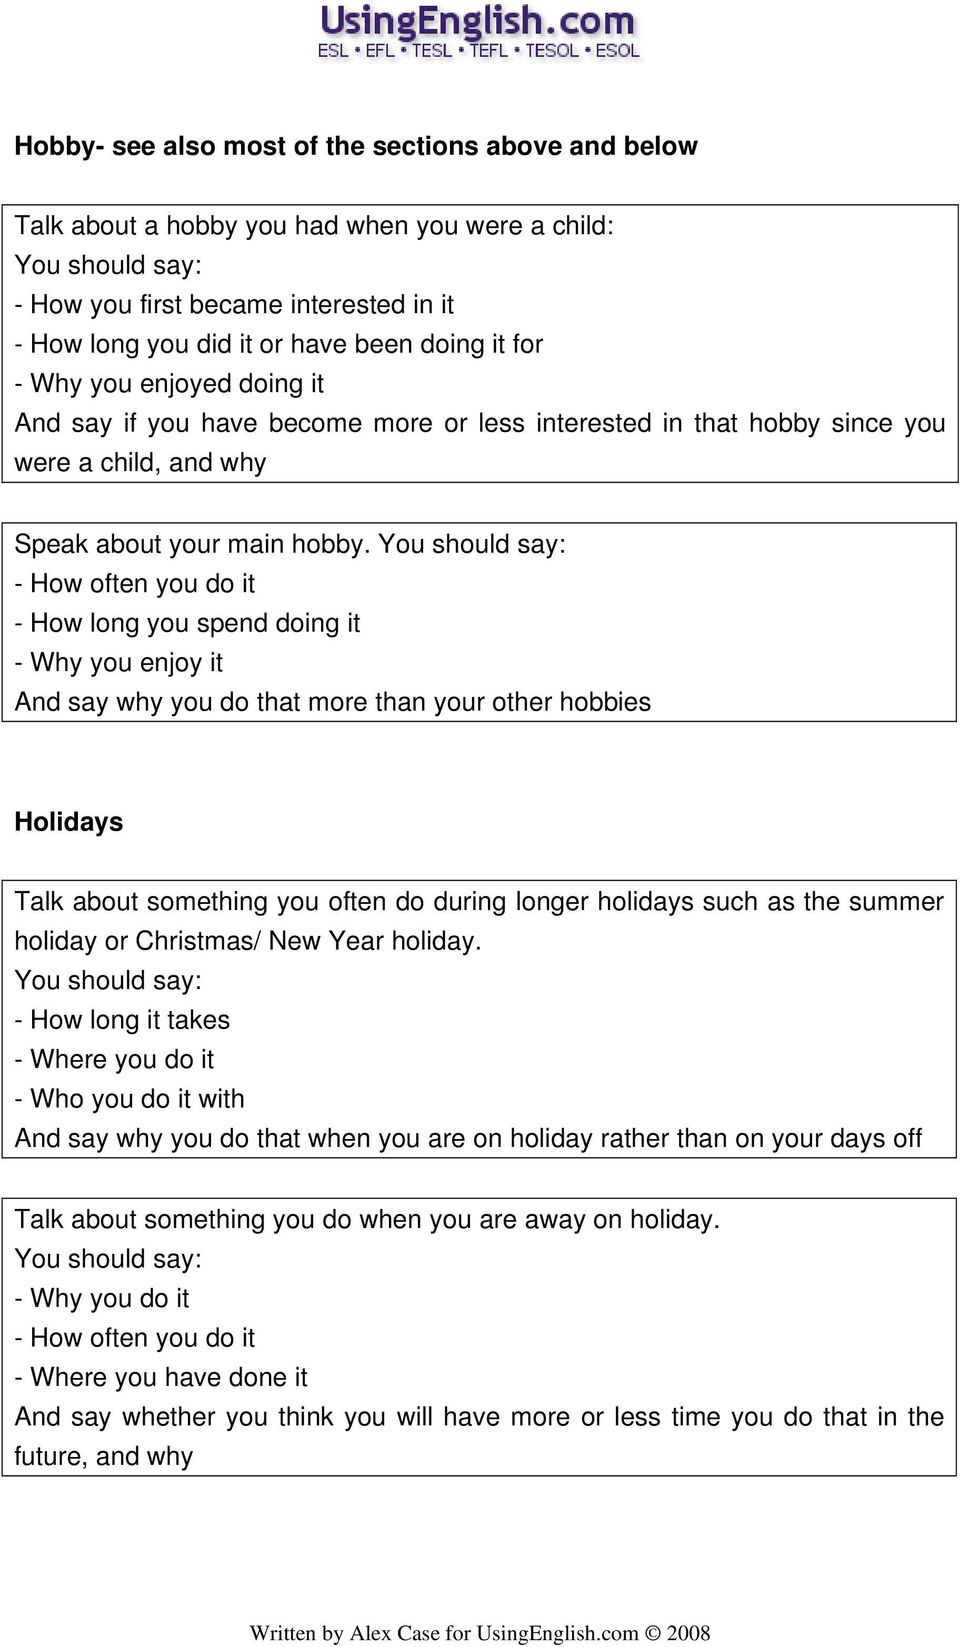 - How often you do it - How long you spend doing it - Why you enjoy it And say why you do that more than your other hobbies Holidays Talk about something you often do during longer holidays such as